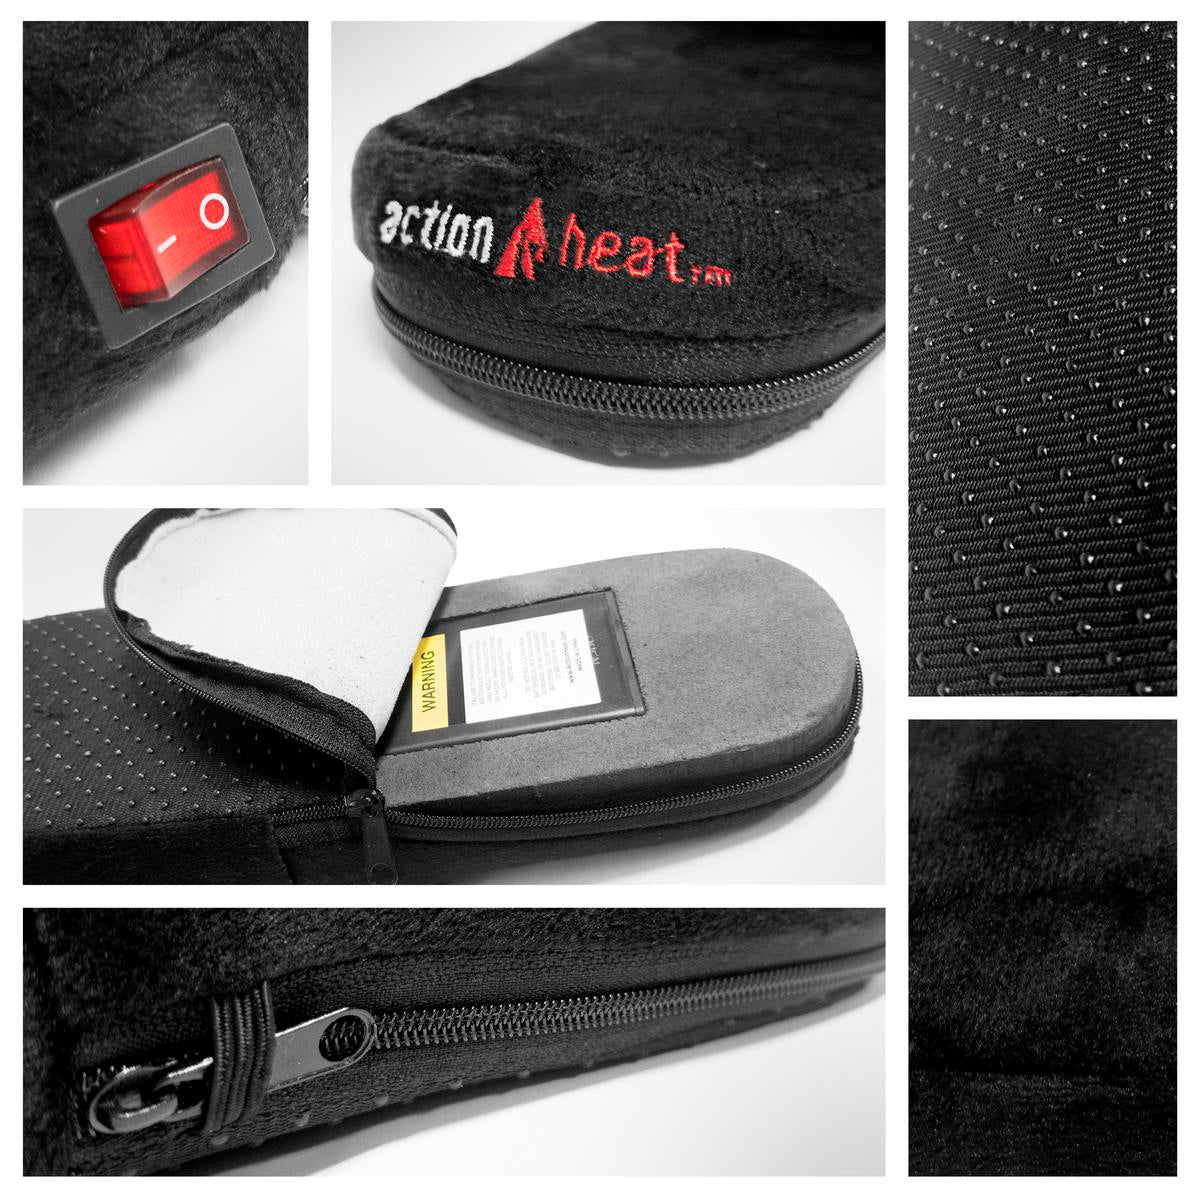 ActionHeat AA Battery Heated Slippers - Info